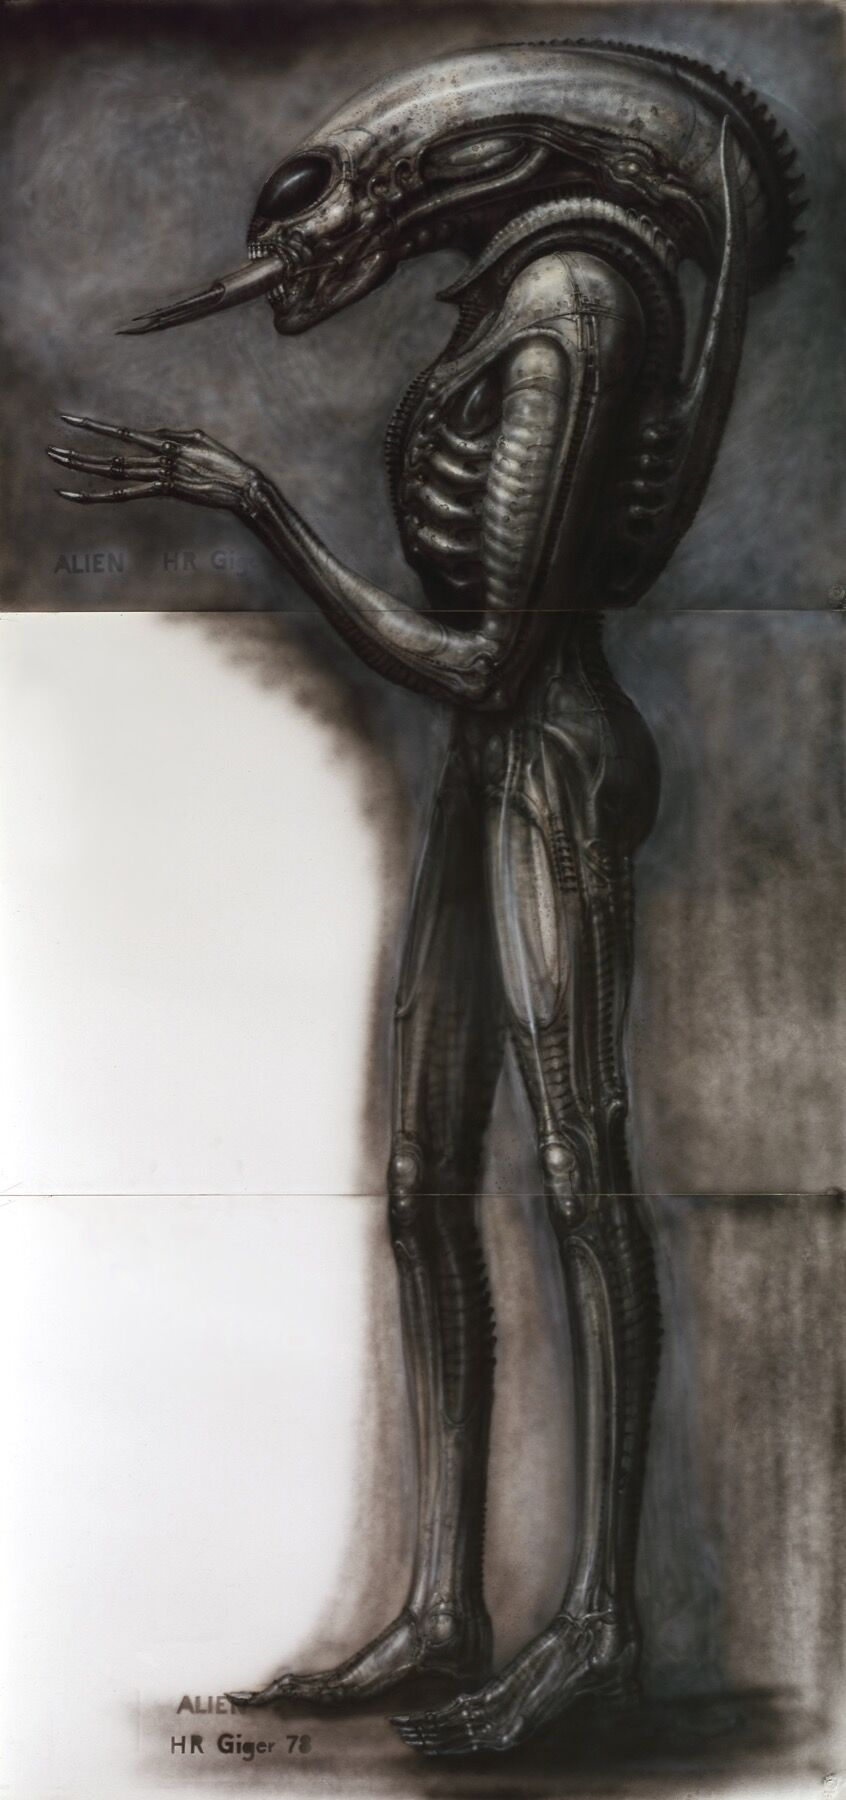 H.R. Giger, Alien III, Side View II, 1978. Courtesy of the H.R. Giger Museum.